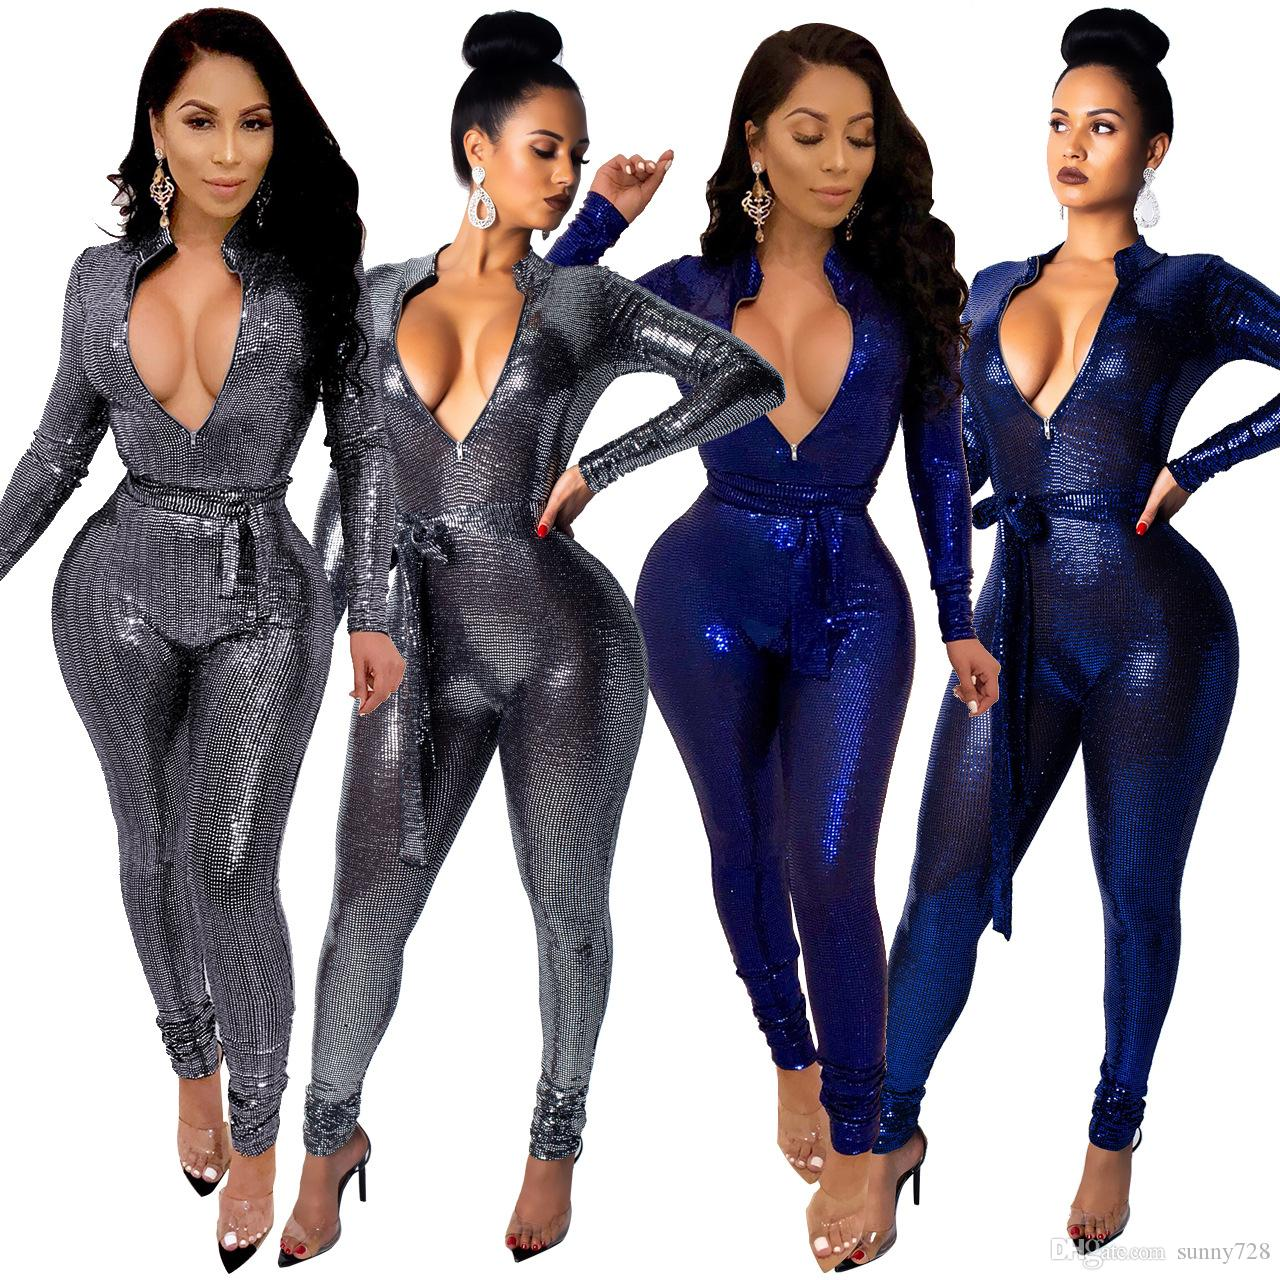 3fbff0fe61ec 2019 Hot Latest Blingbling Sequins Women Party Jumpsuits Rompers Sexy Deep  V Neck Long Sleeves Sash Skinny Club Pants Outfits Blue Silver Sexy Women  ...